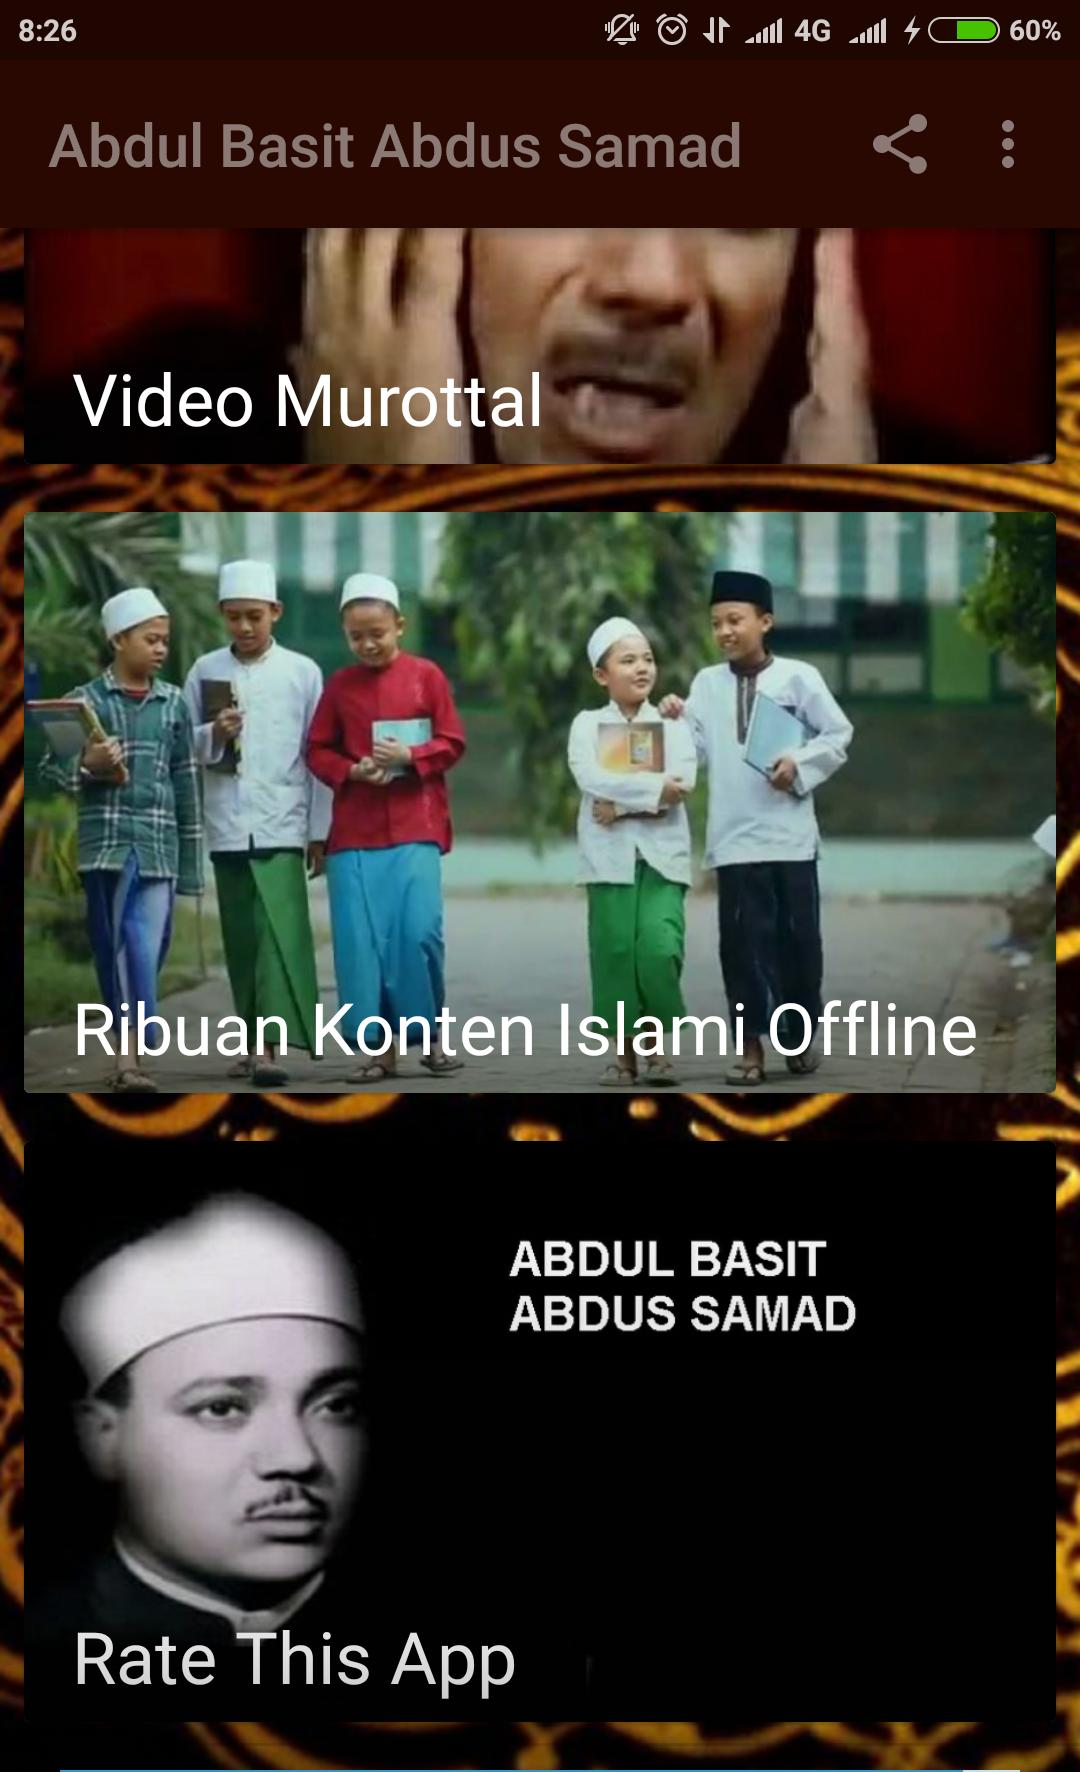 ABDUL BASIT ABDUSSAMAD ALQURAN AUDIO MP3 & VIDEO for Android